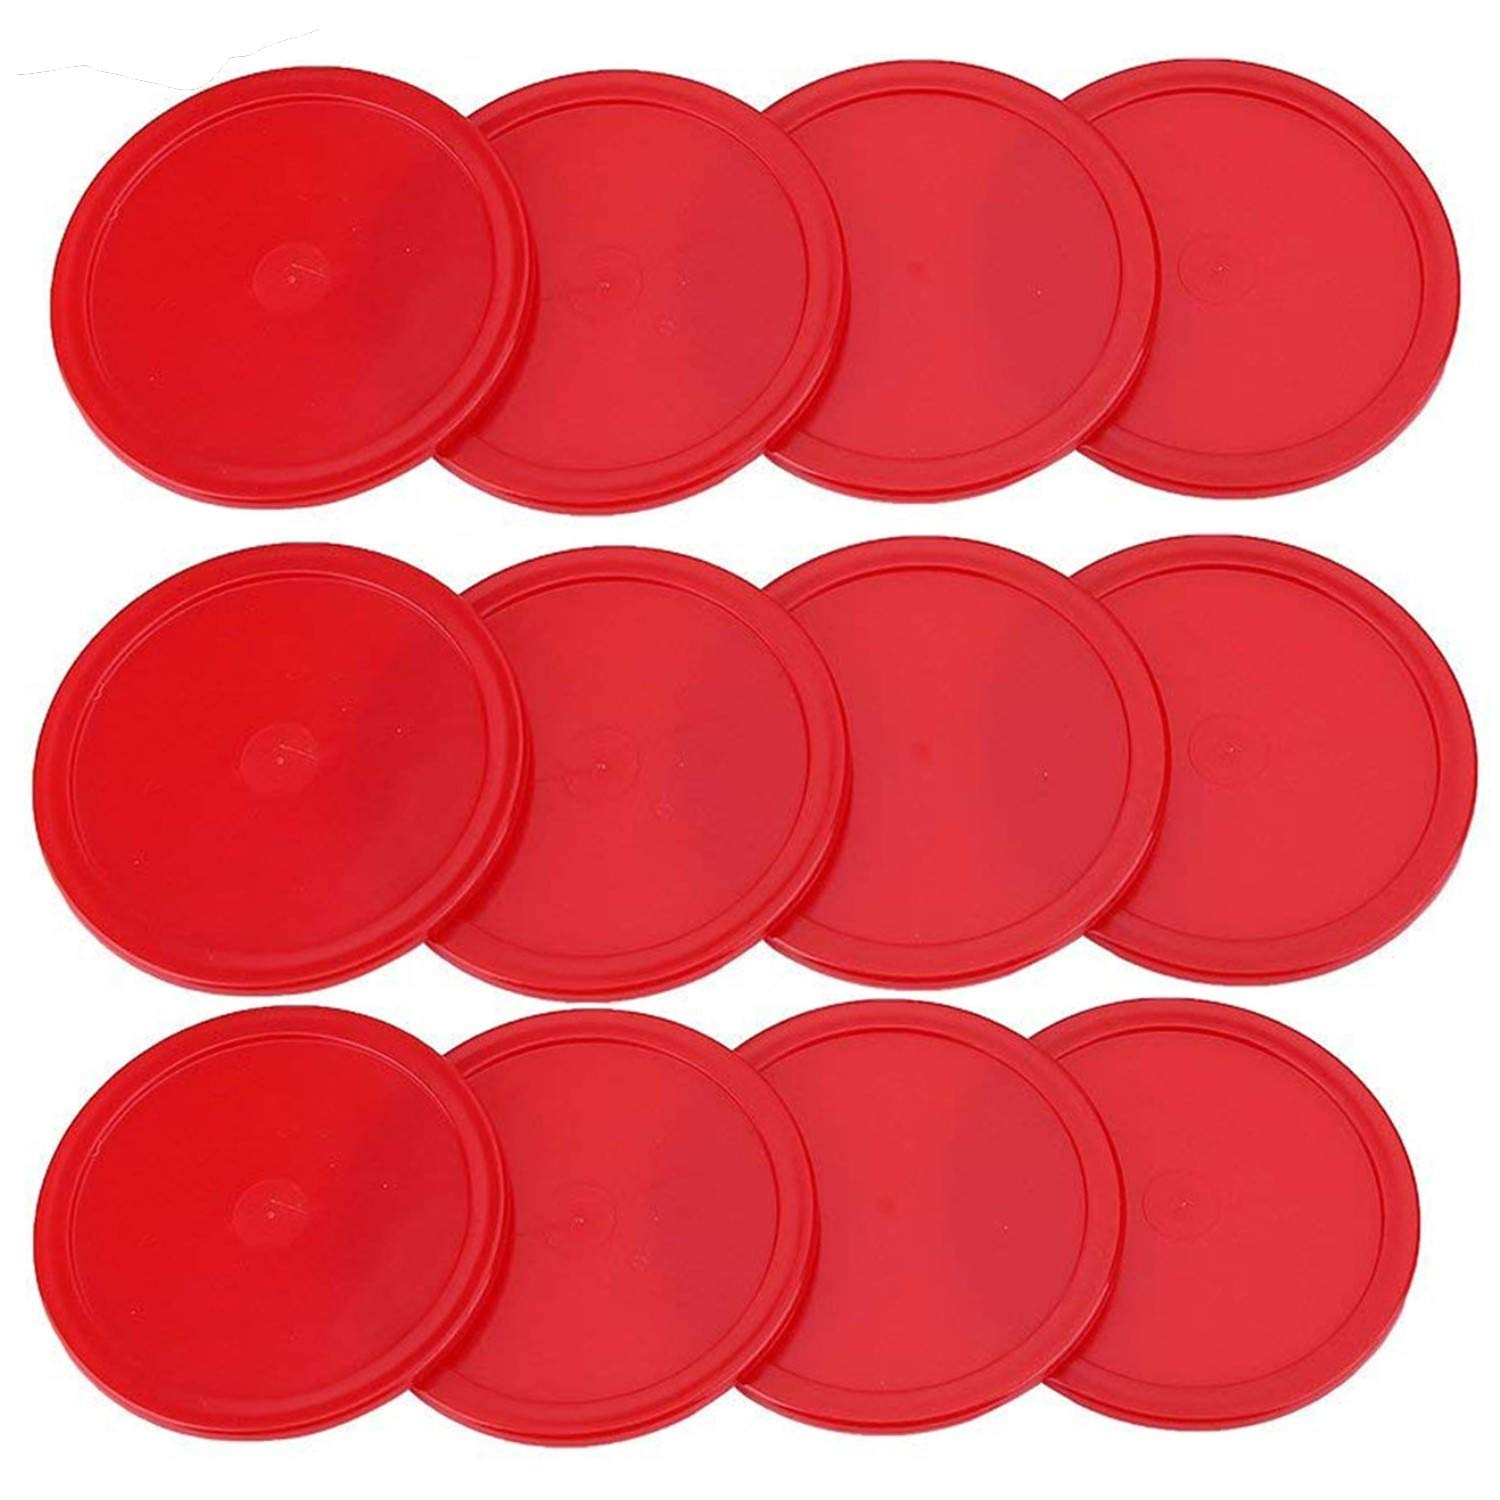 ONE250 3 1/4 inch Air Hockey Pucks, One Dozen Goal Full Size Packs Replacement Accessories for Game Tables (12 Pcs) (Red) by ONE250